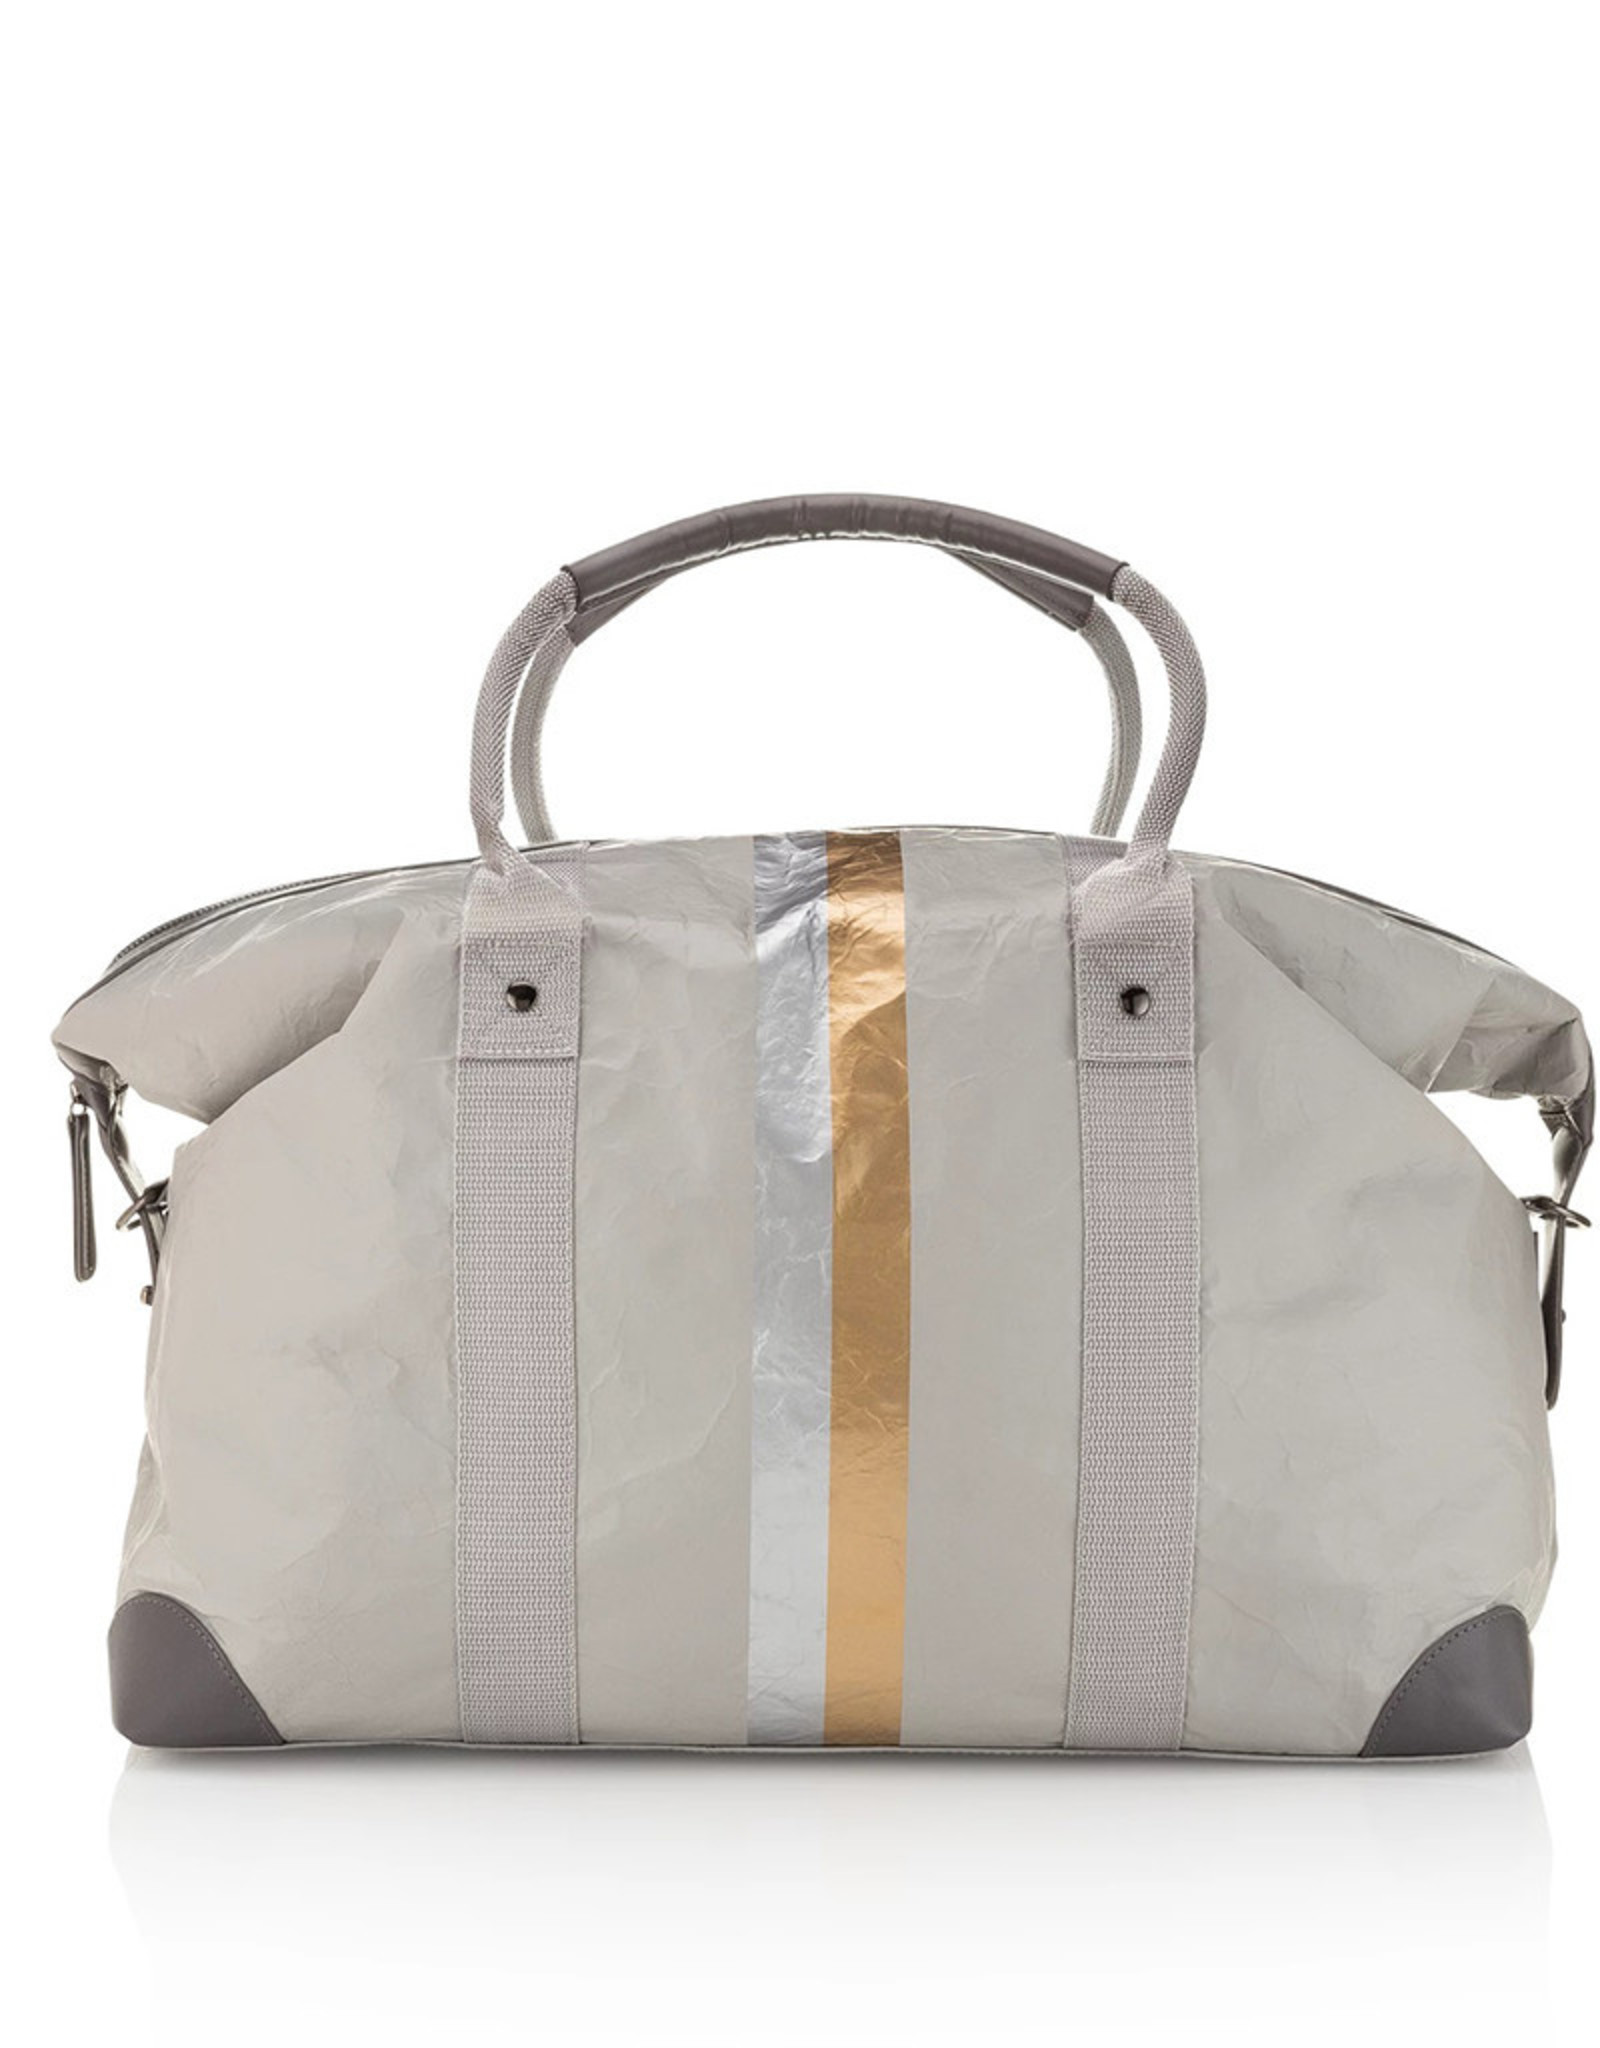 HI LOVE TRAVEL THE WEEKENDER-GRAY WITH METALLIC DOUBLE LINE